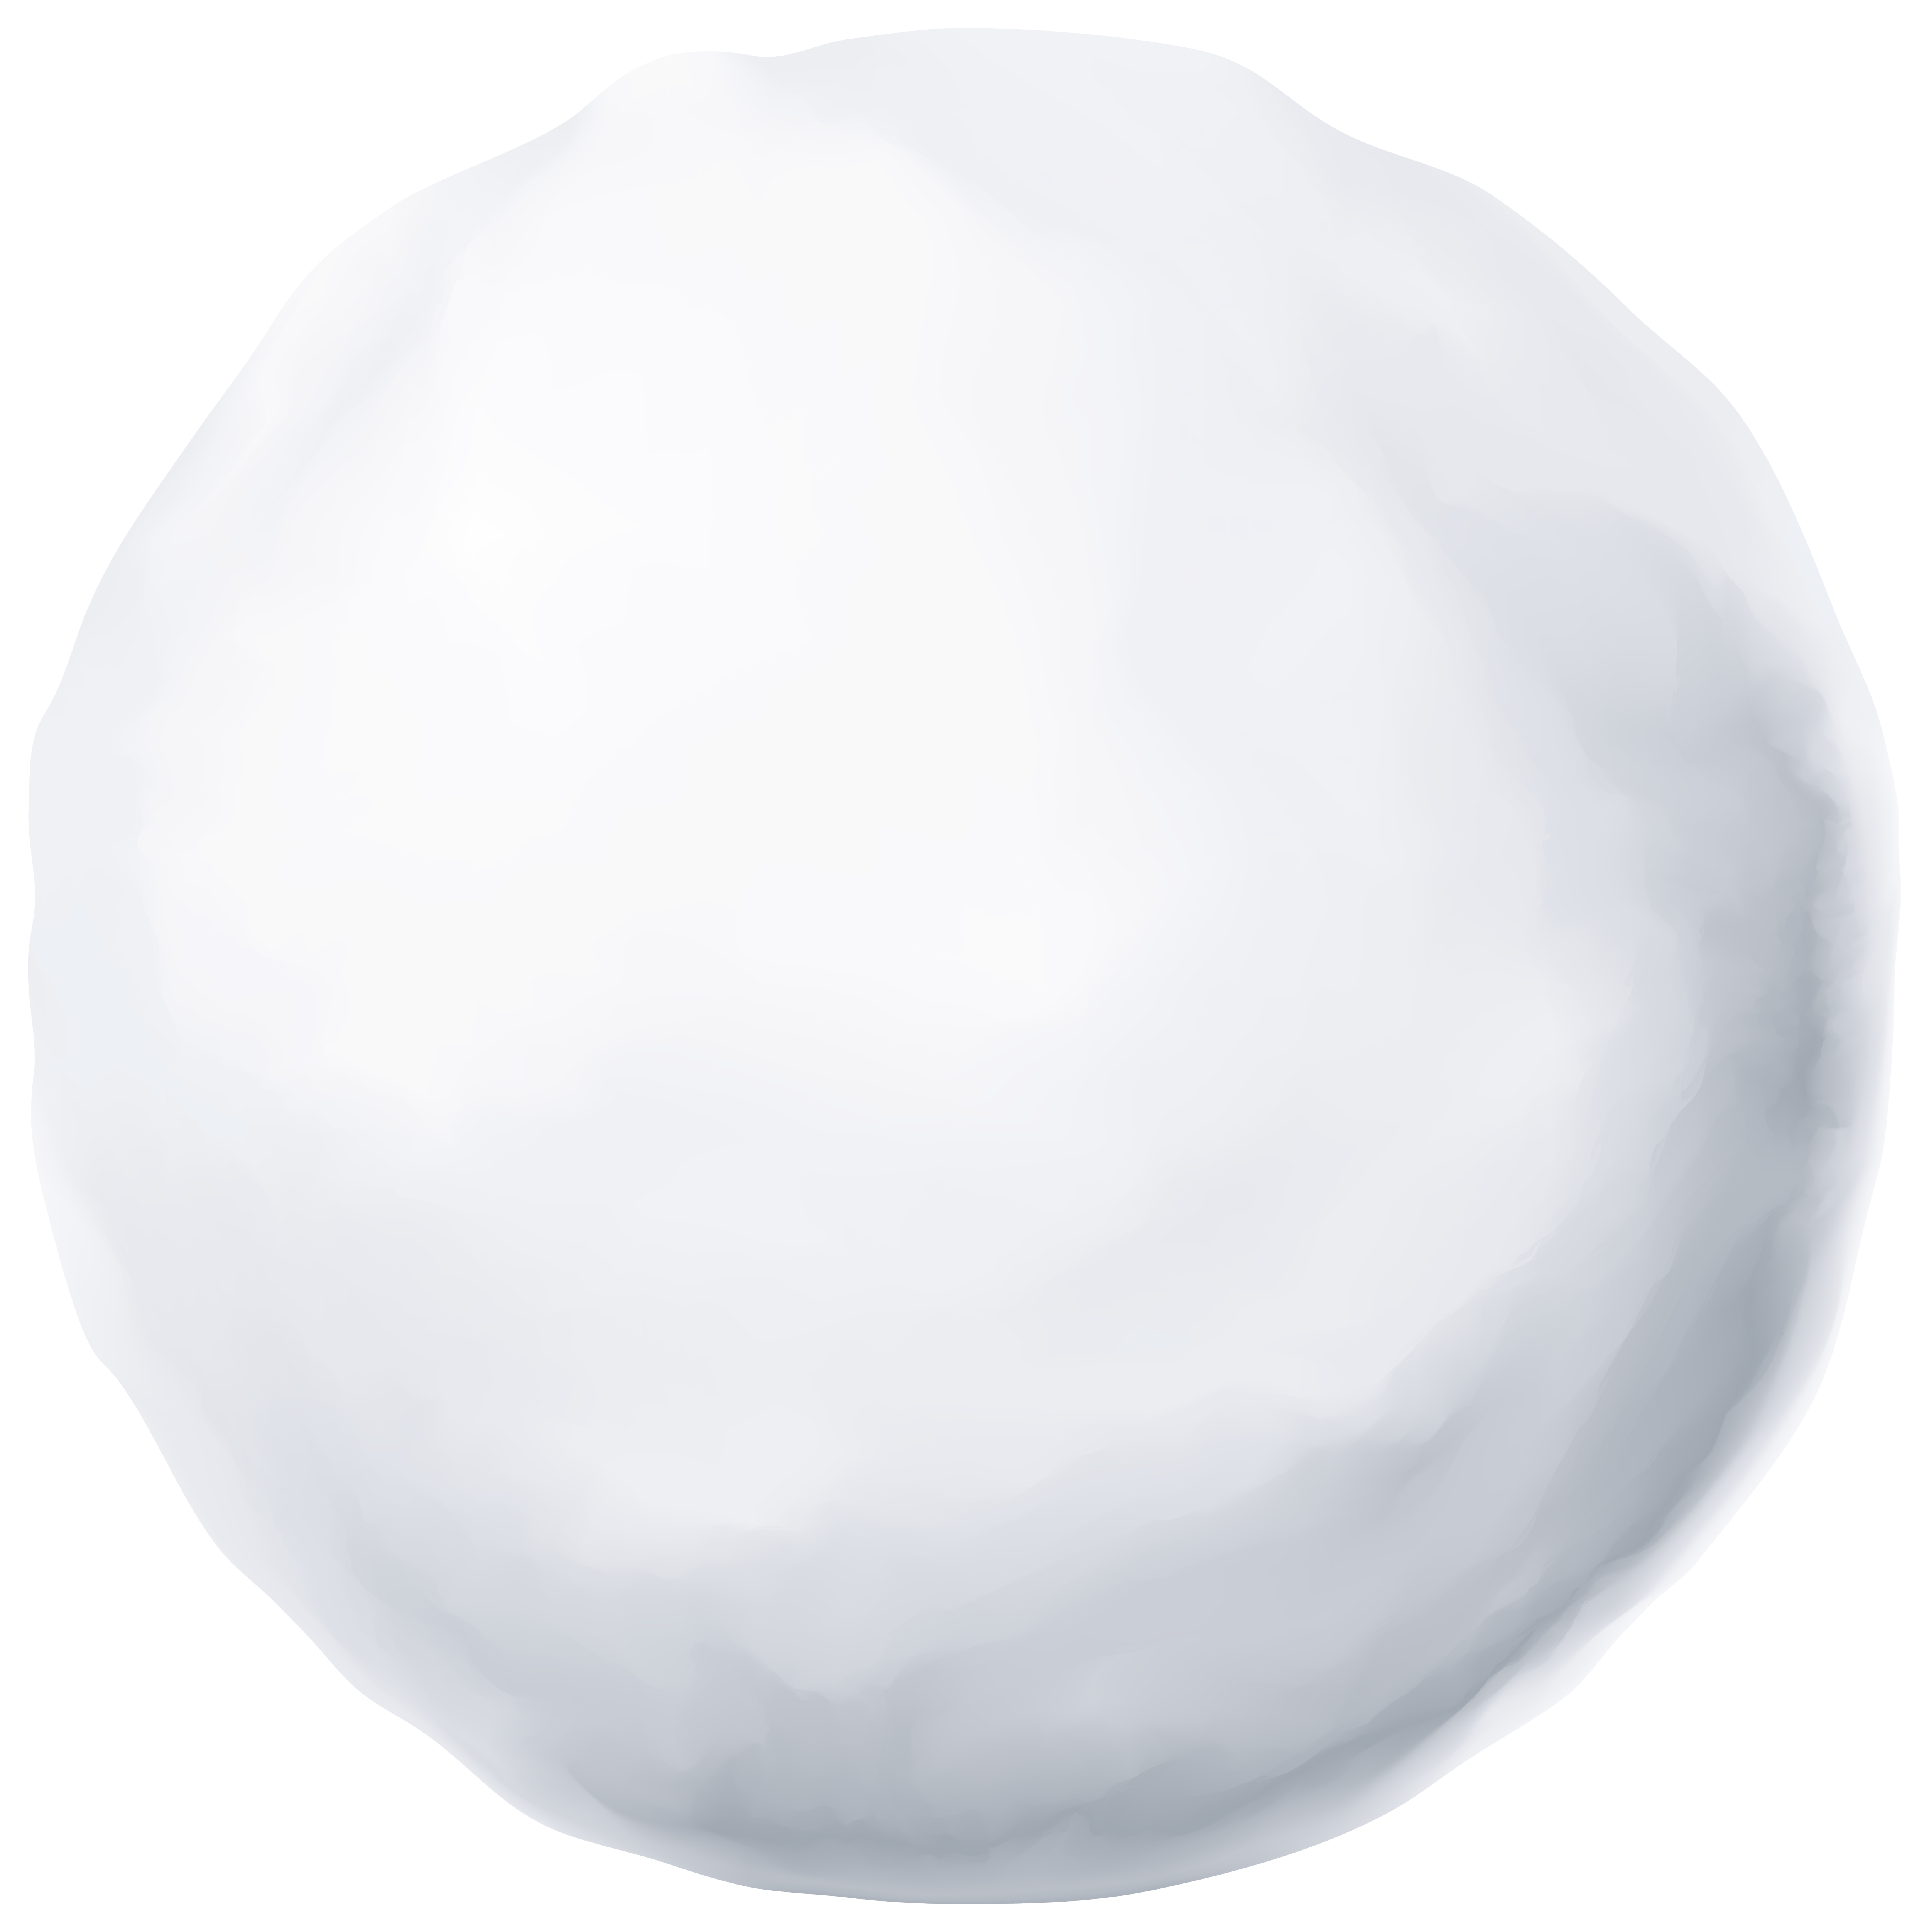 Snowball PNG Clipart Image.